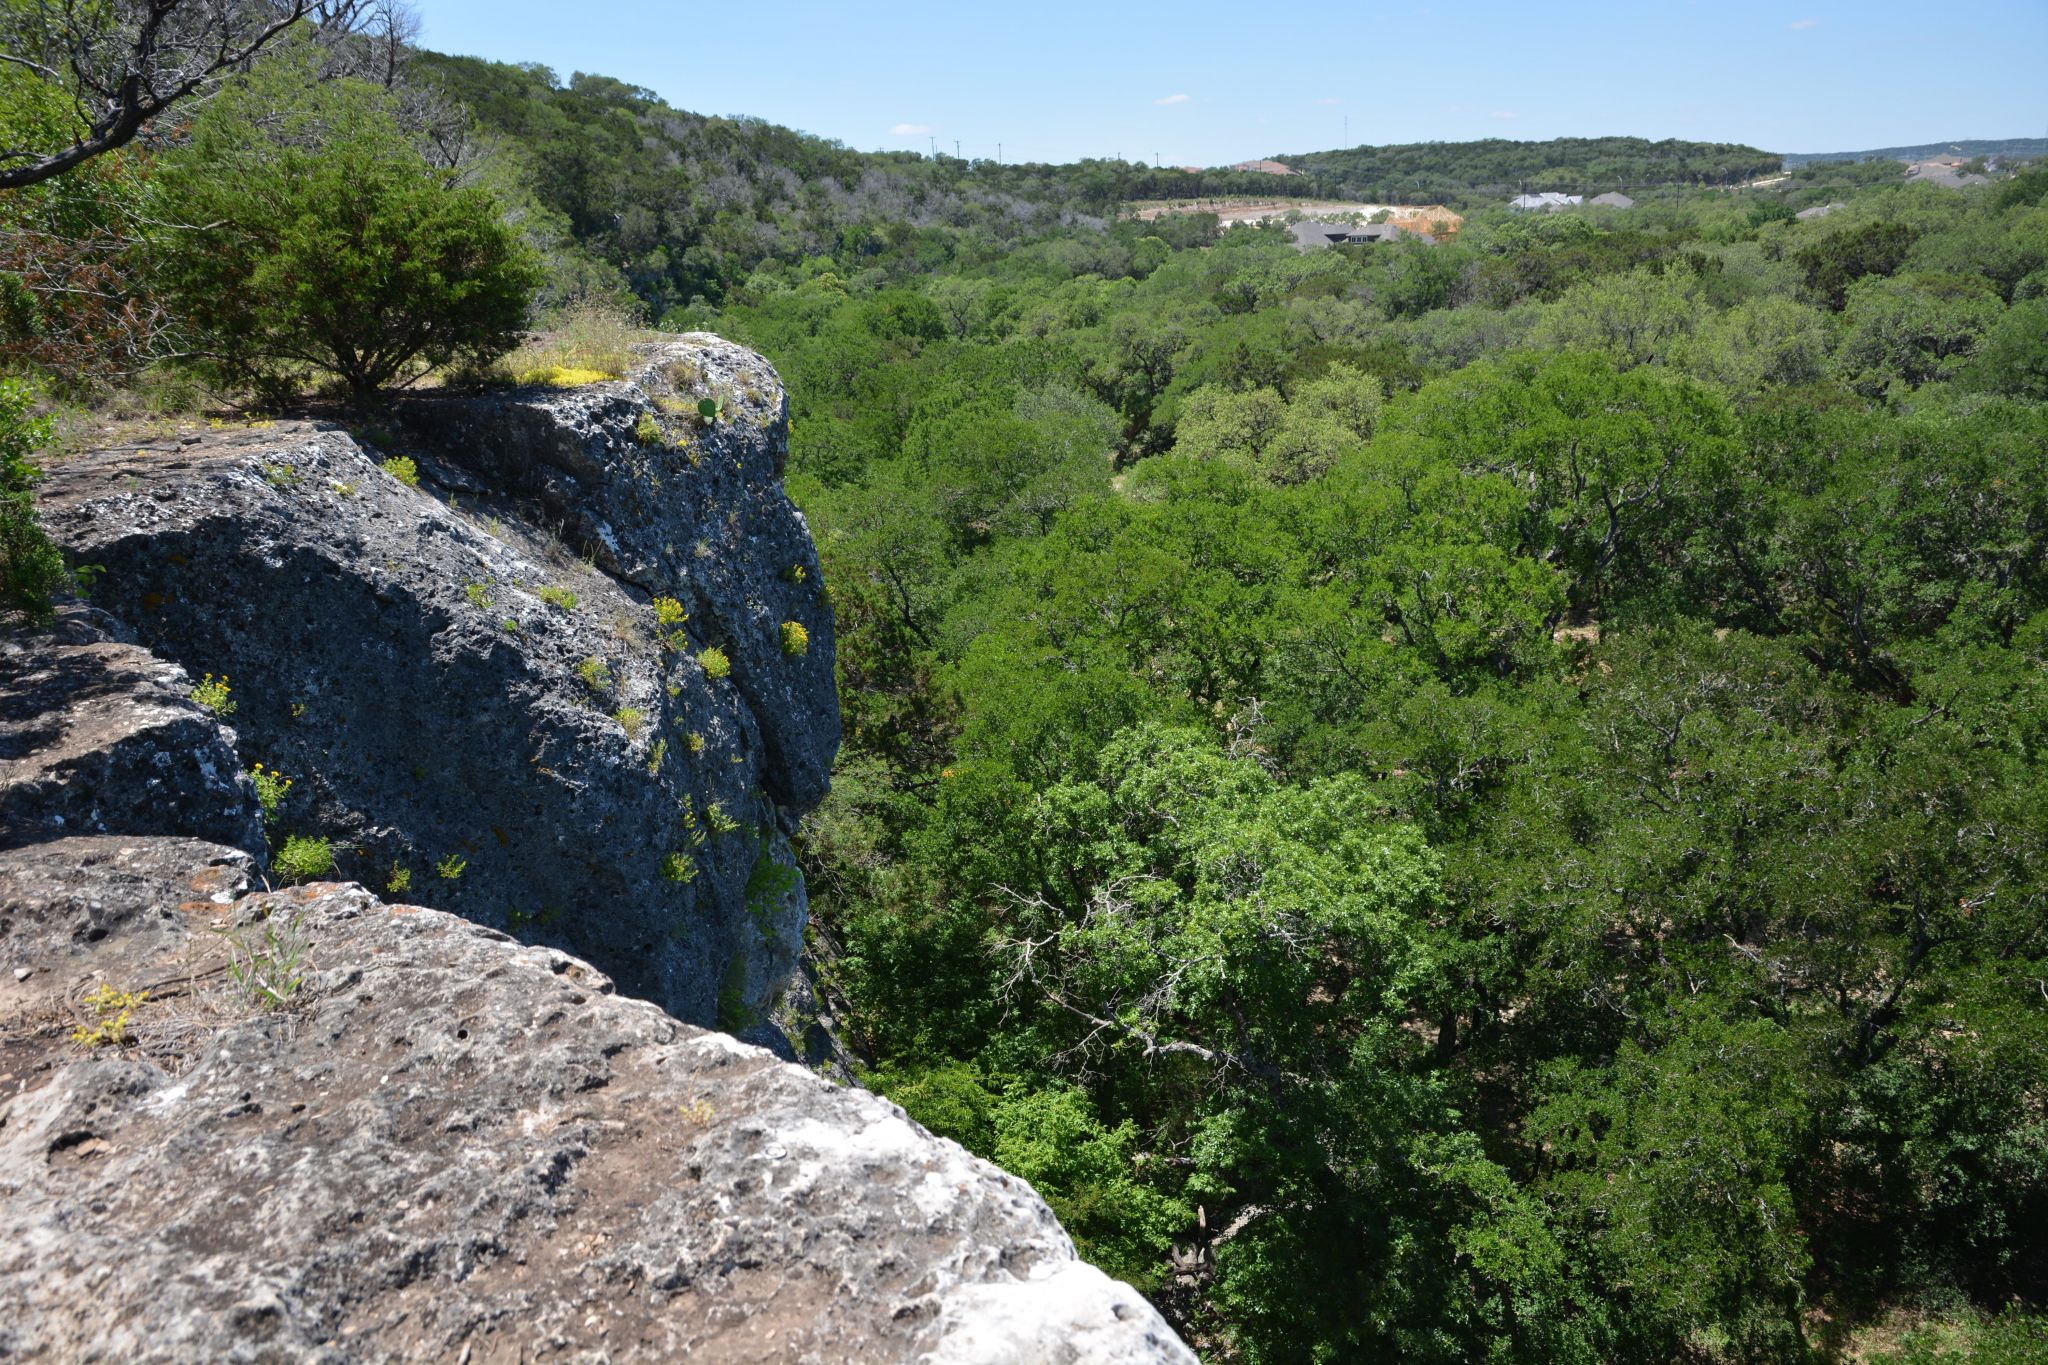 Medicine Wall to be San Antonio's first official outdoor rock climbing wall